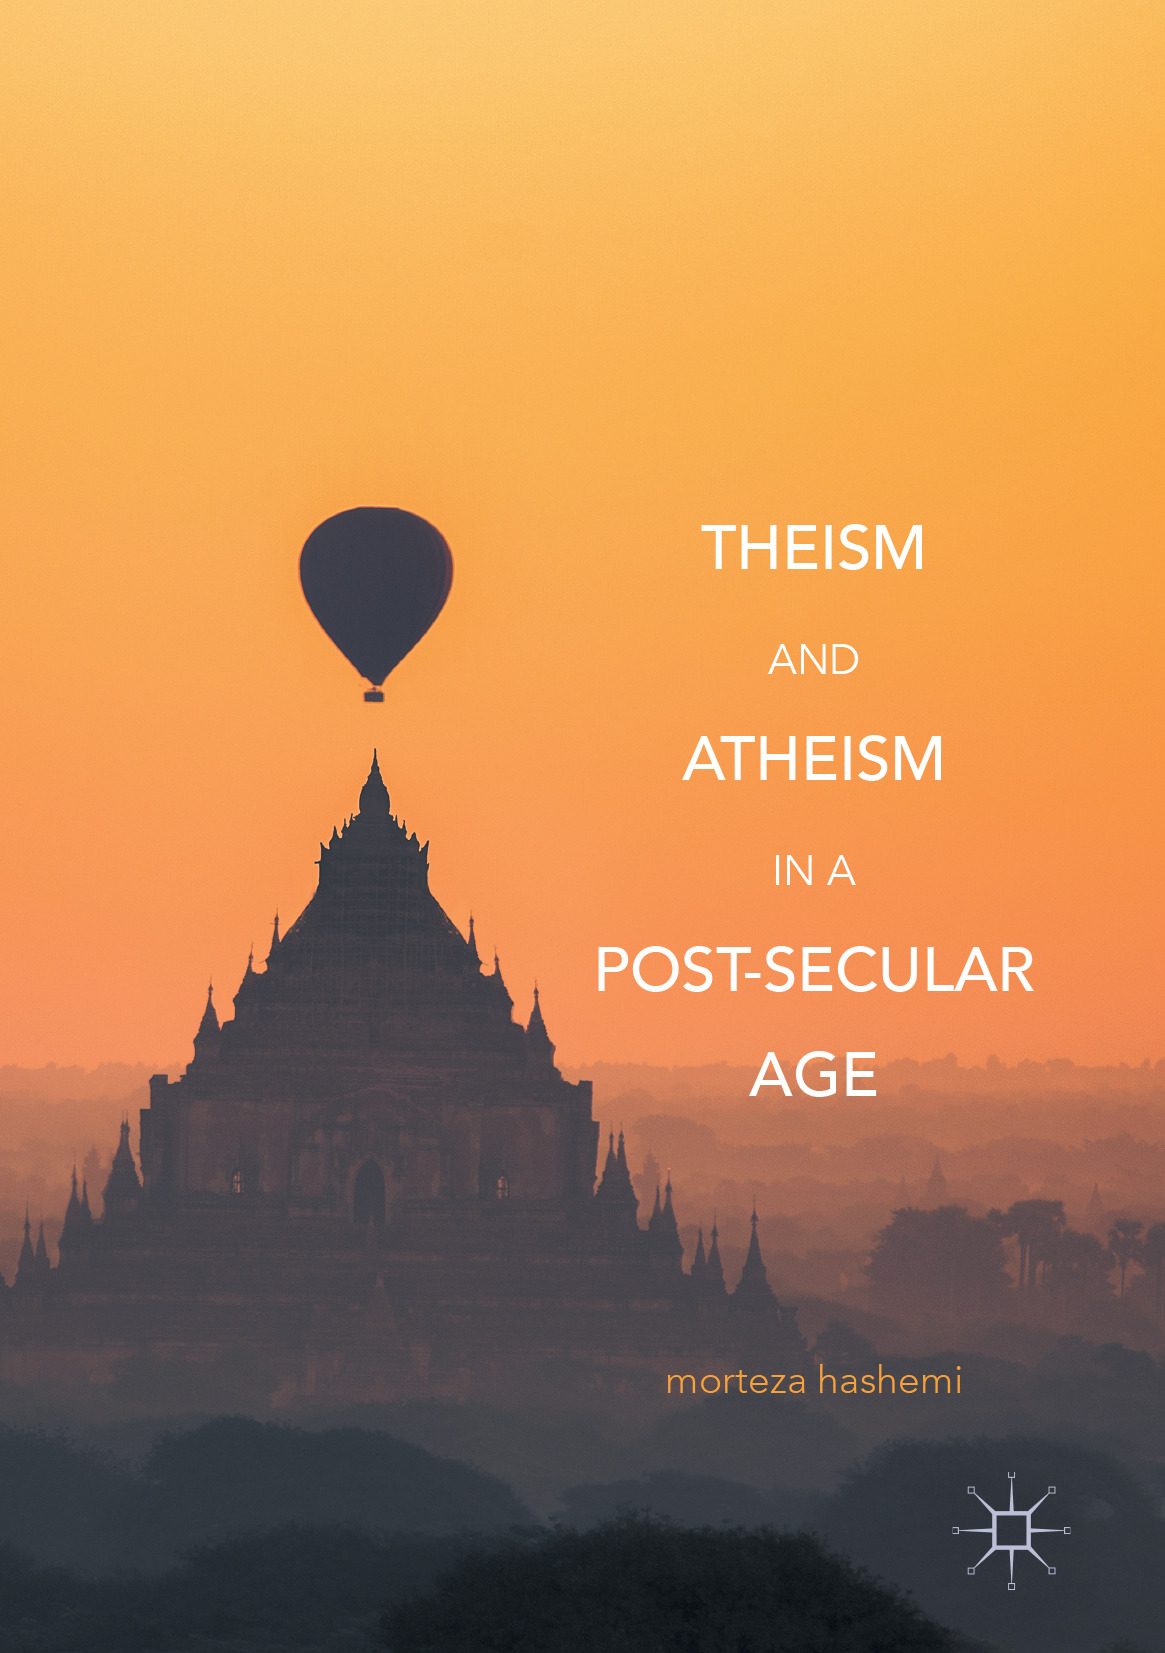 Hashemi, Morteza - Theism and Atheism in a Post-Secular Age, ebook